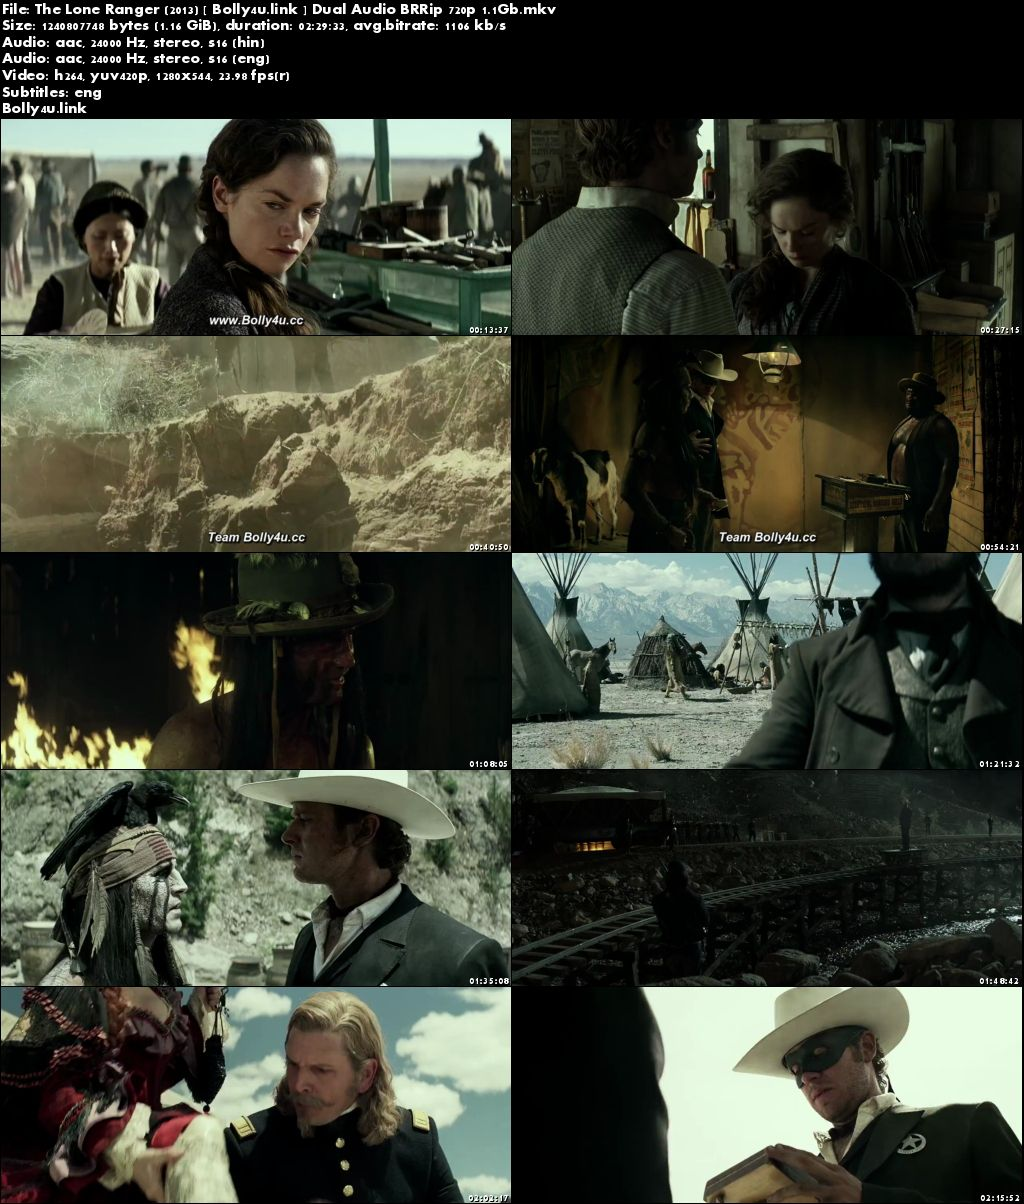 The Lone Ranger 2013 BRRip Hindi Dual Audio ORG 720p ESub Download